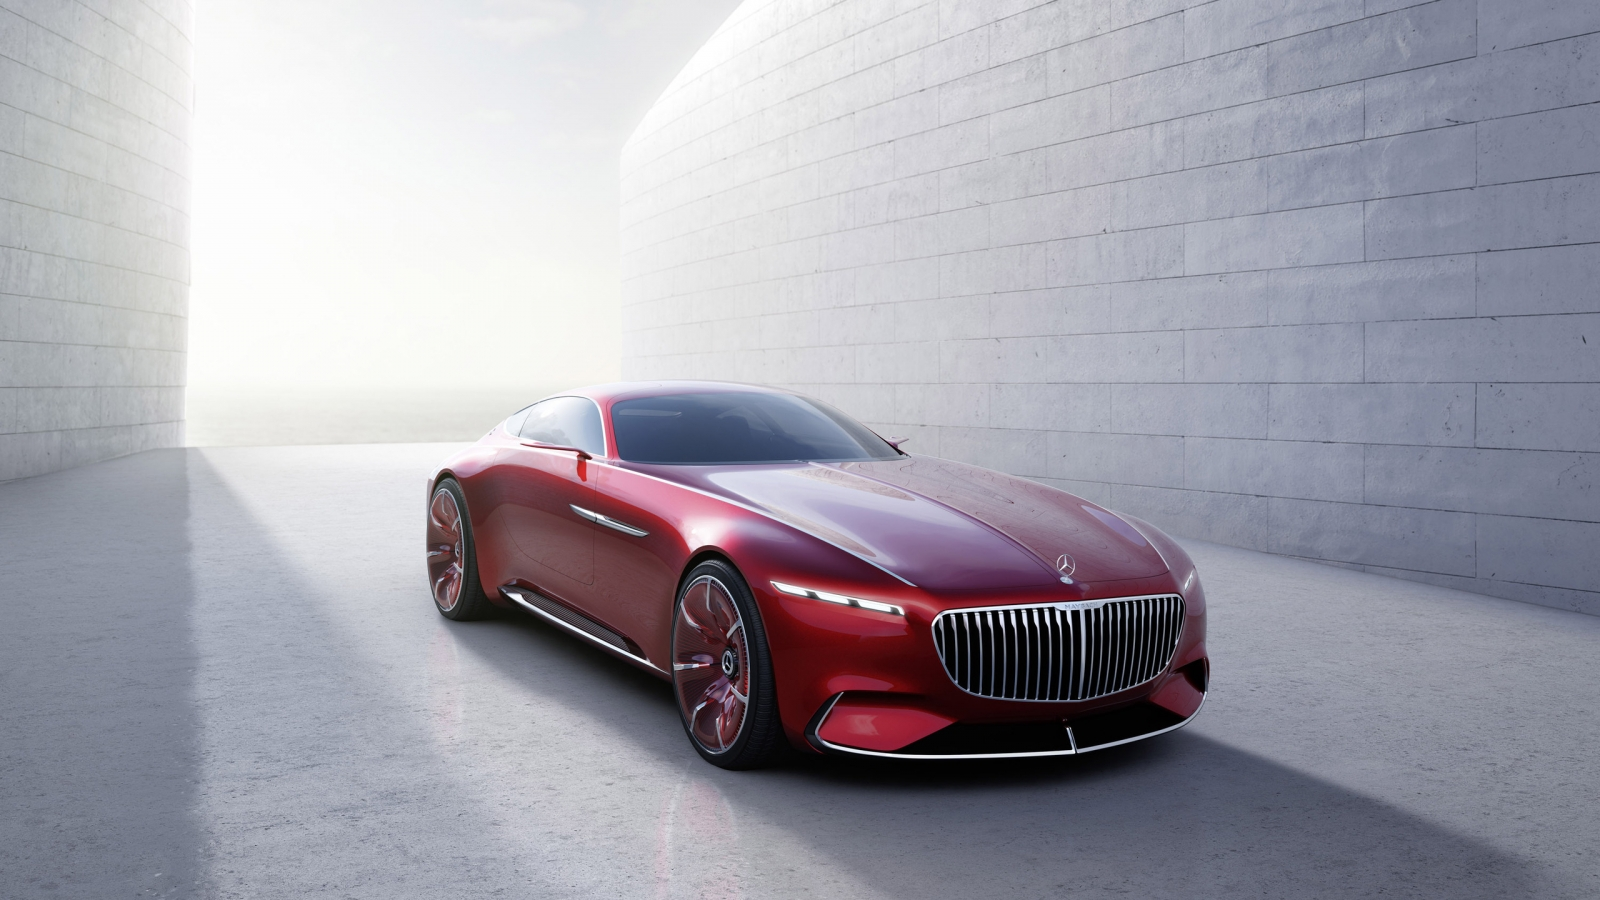 Maybach 6 2016 Concept Car for 1600 x 900 HDTV resolution